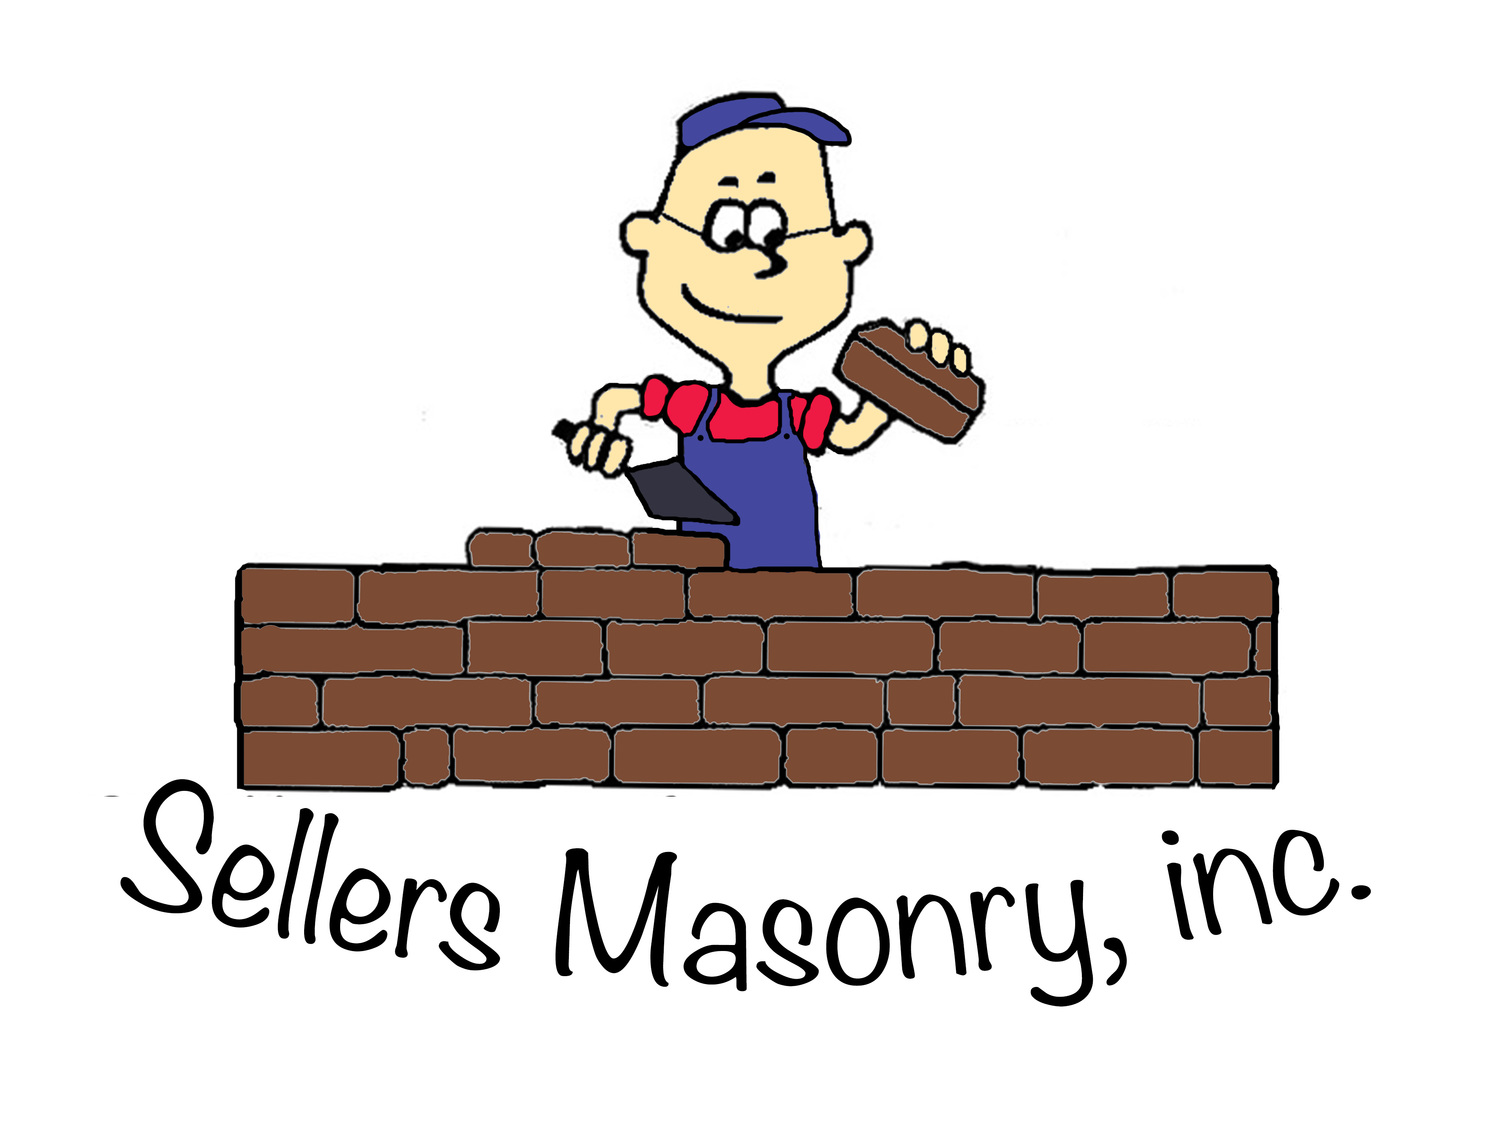 Sellers Masonry, inc.